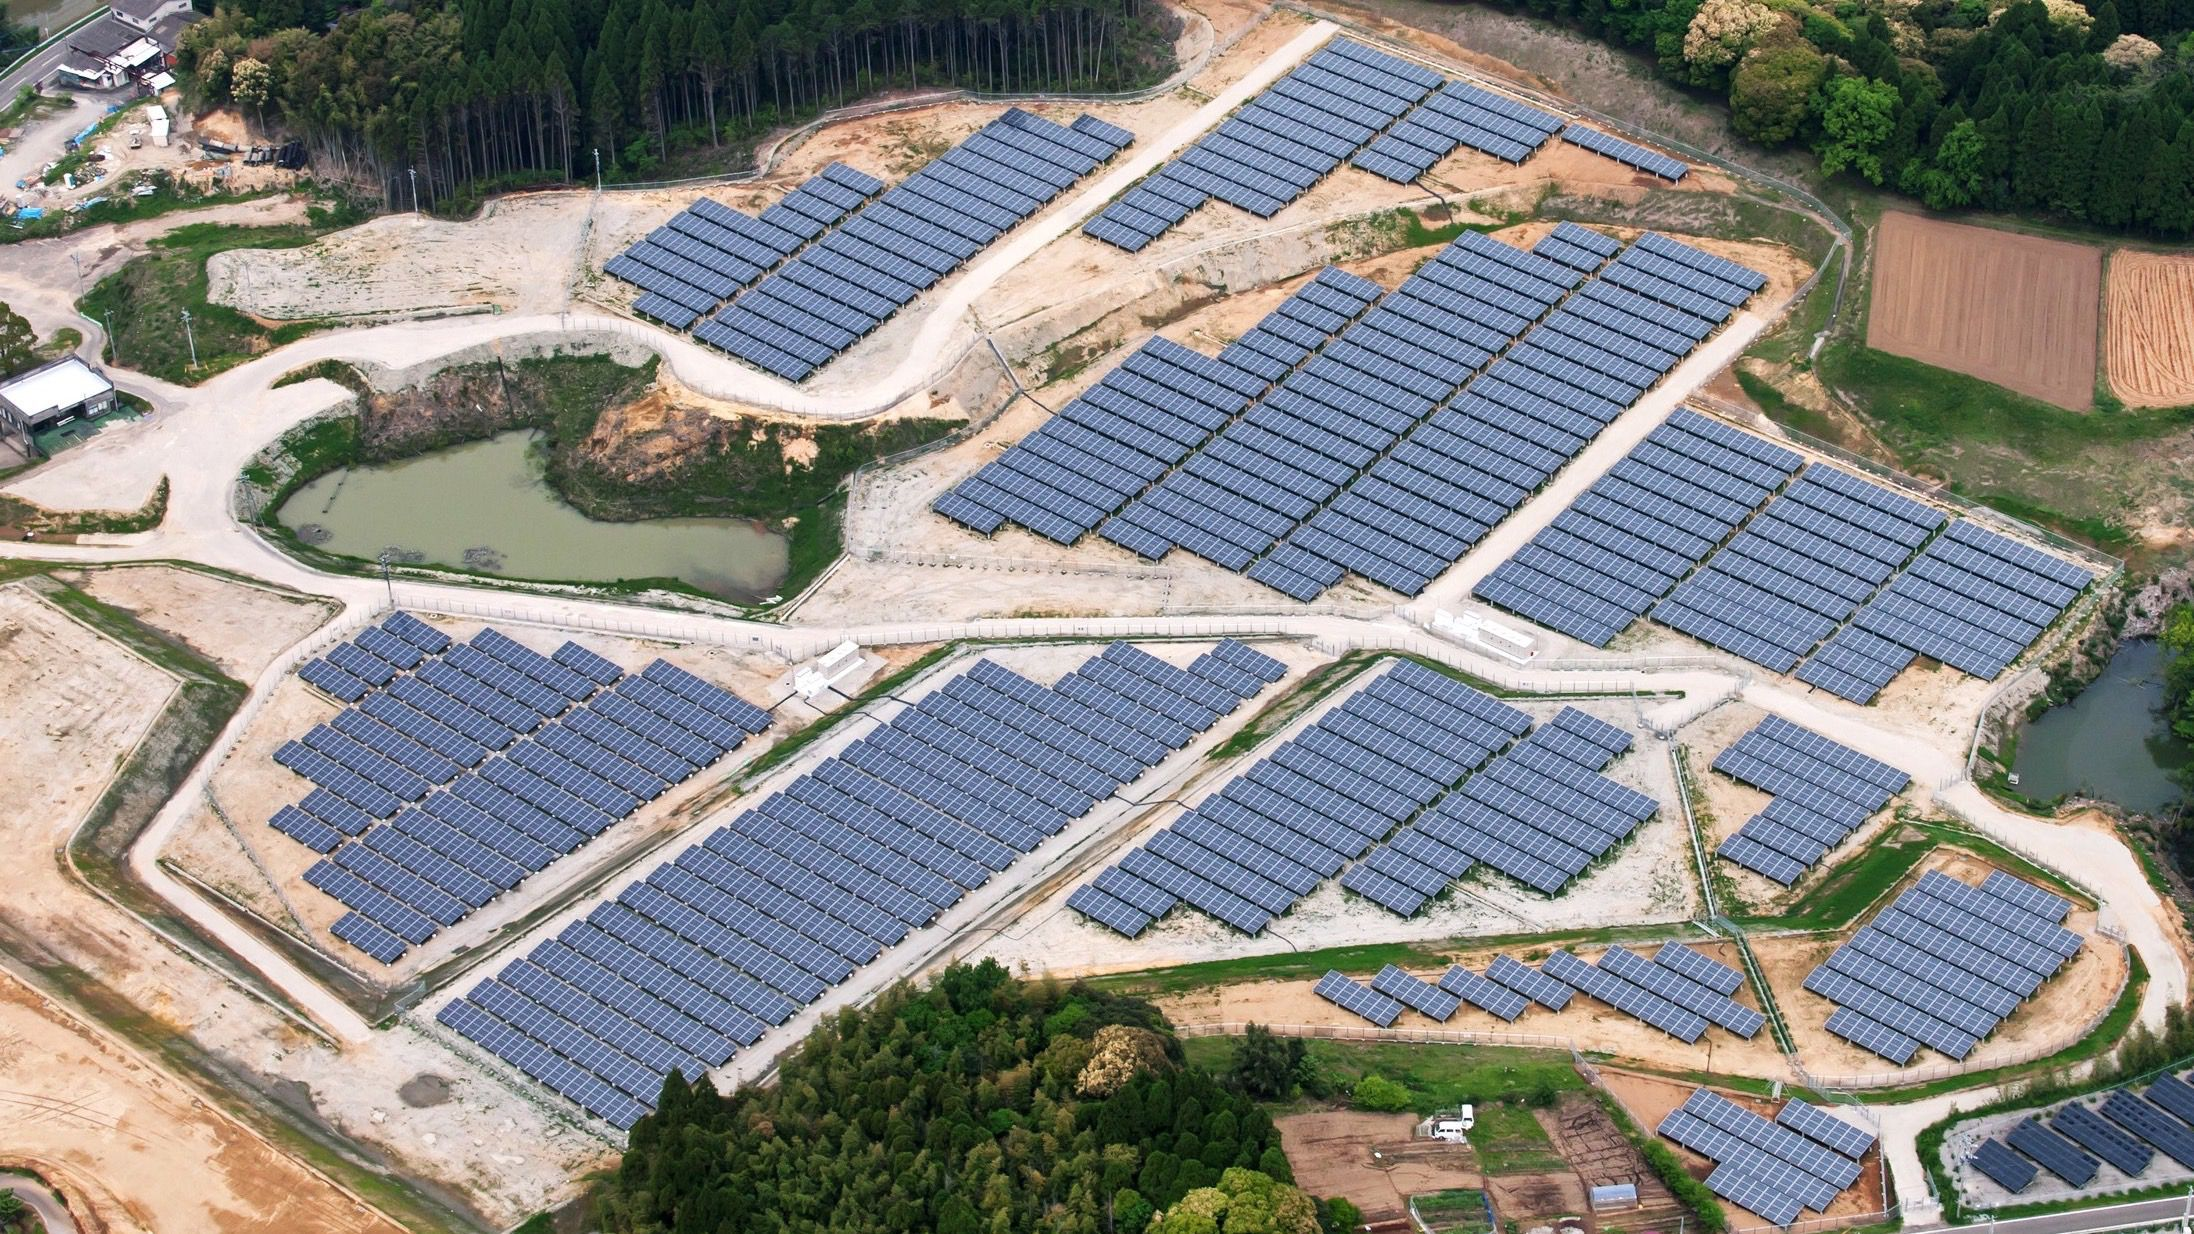 Japan Is Building Solar Energy Plants On Abandoned Golf Courses And The Idea Is Spreading Quartz